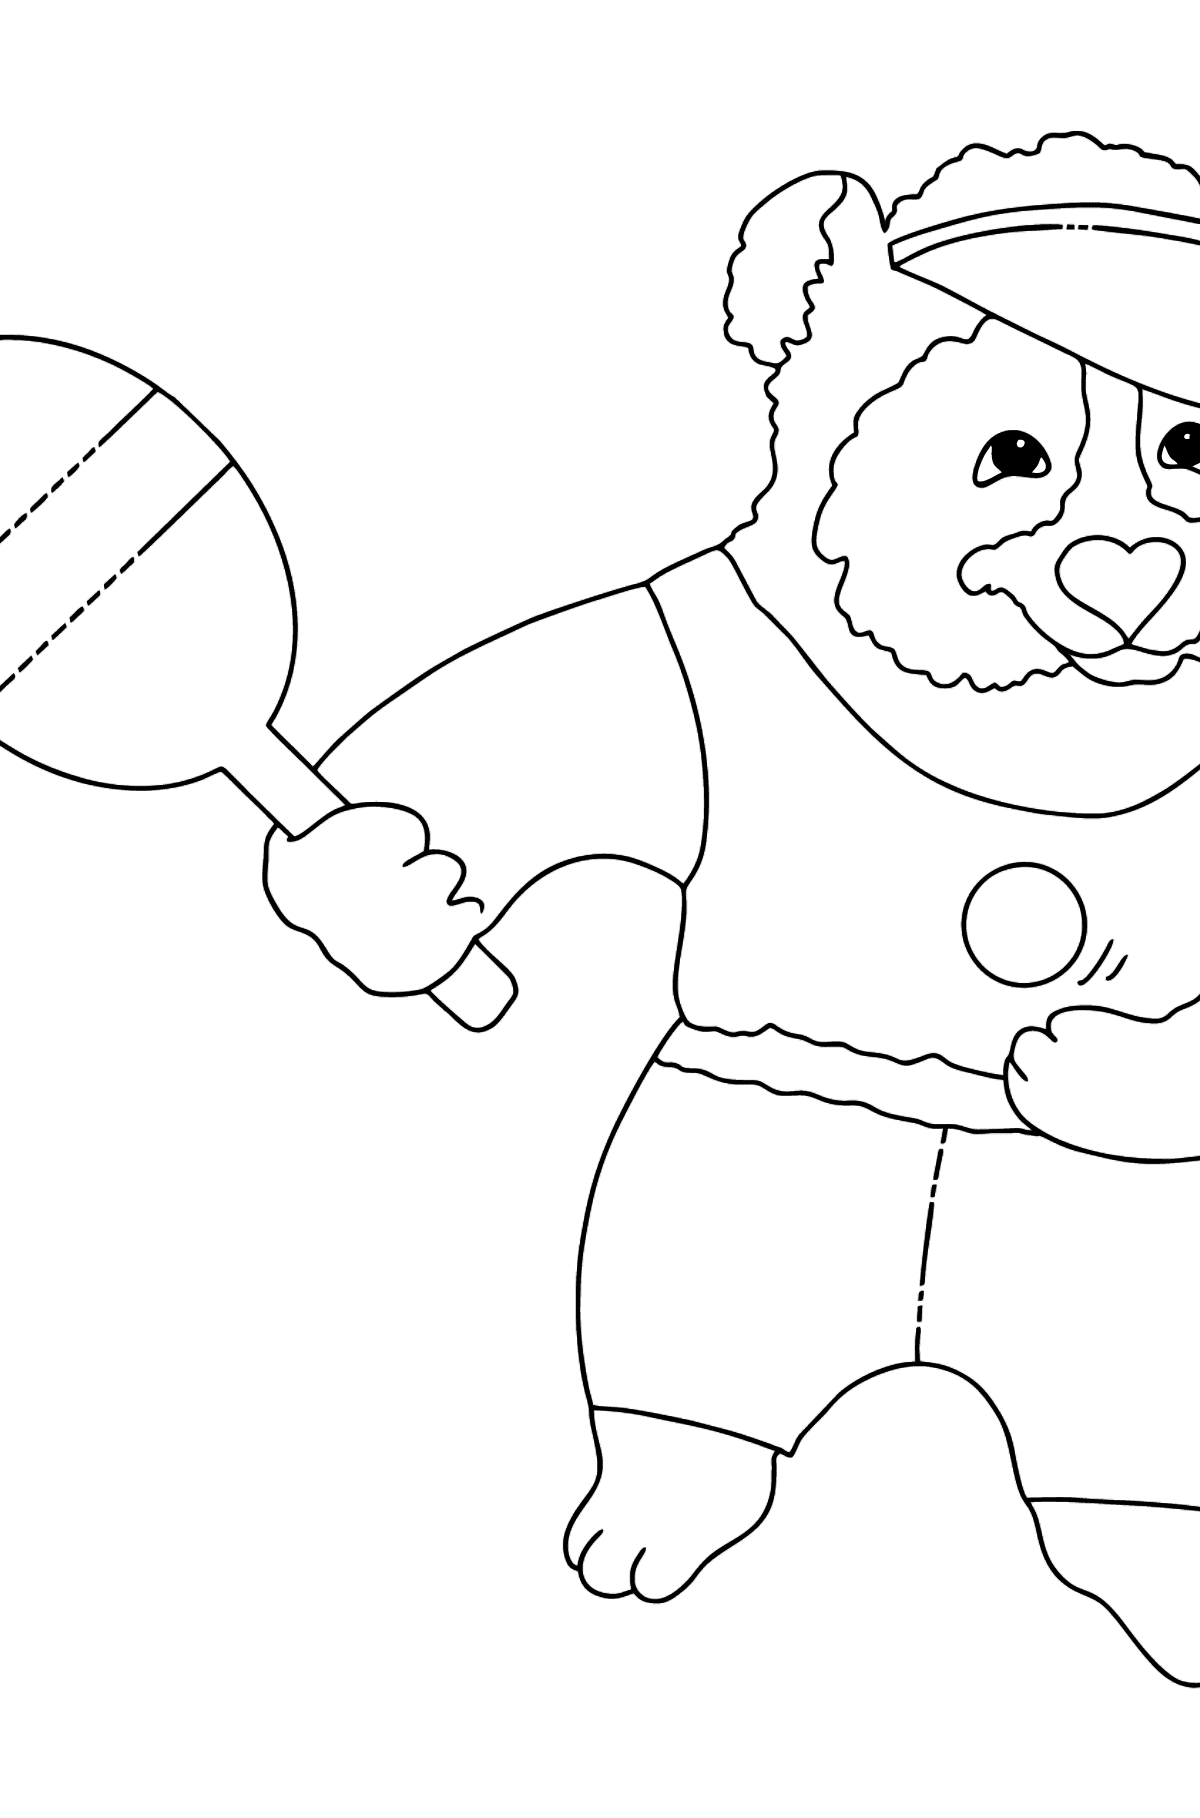 Coloring Picture - A Panda with a Tennis Racket - Coloring Pages for Kids